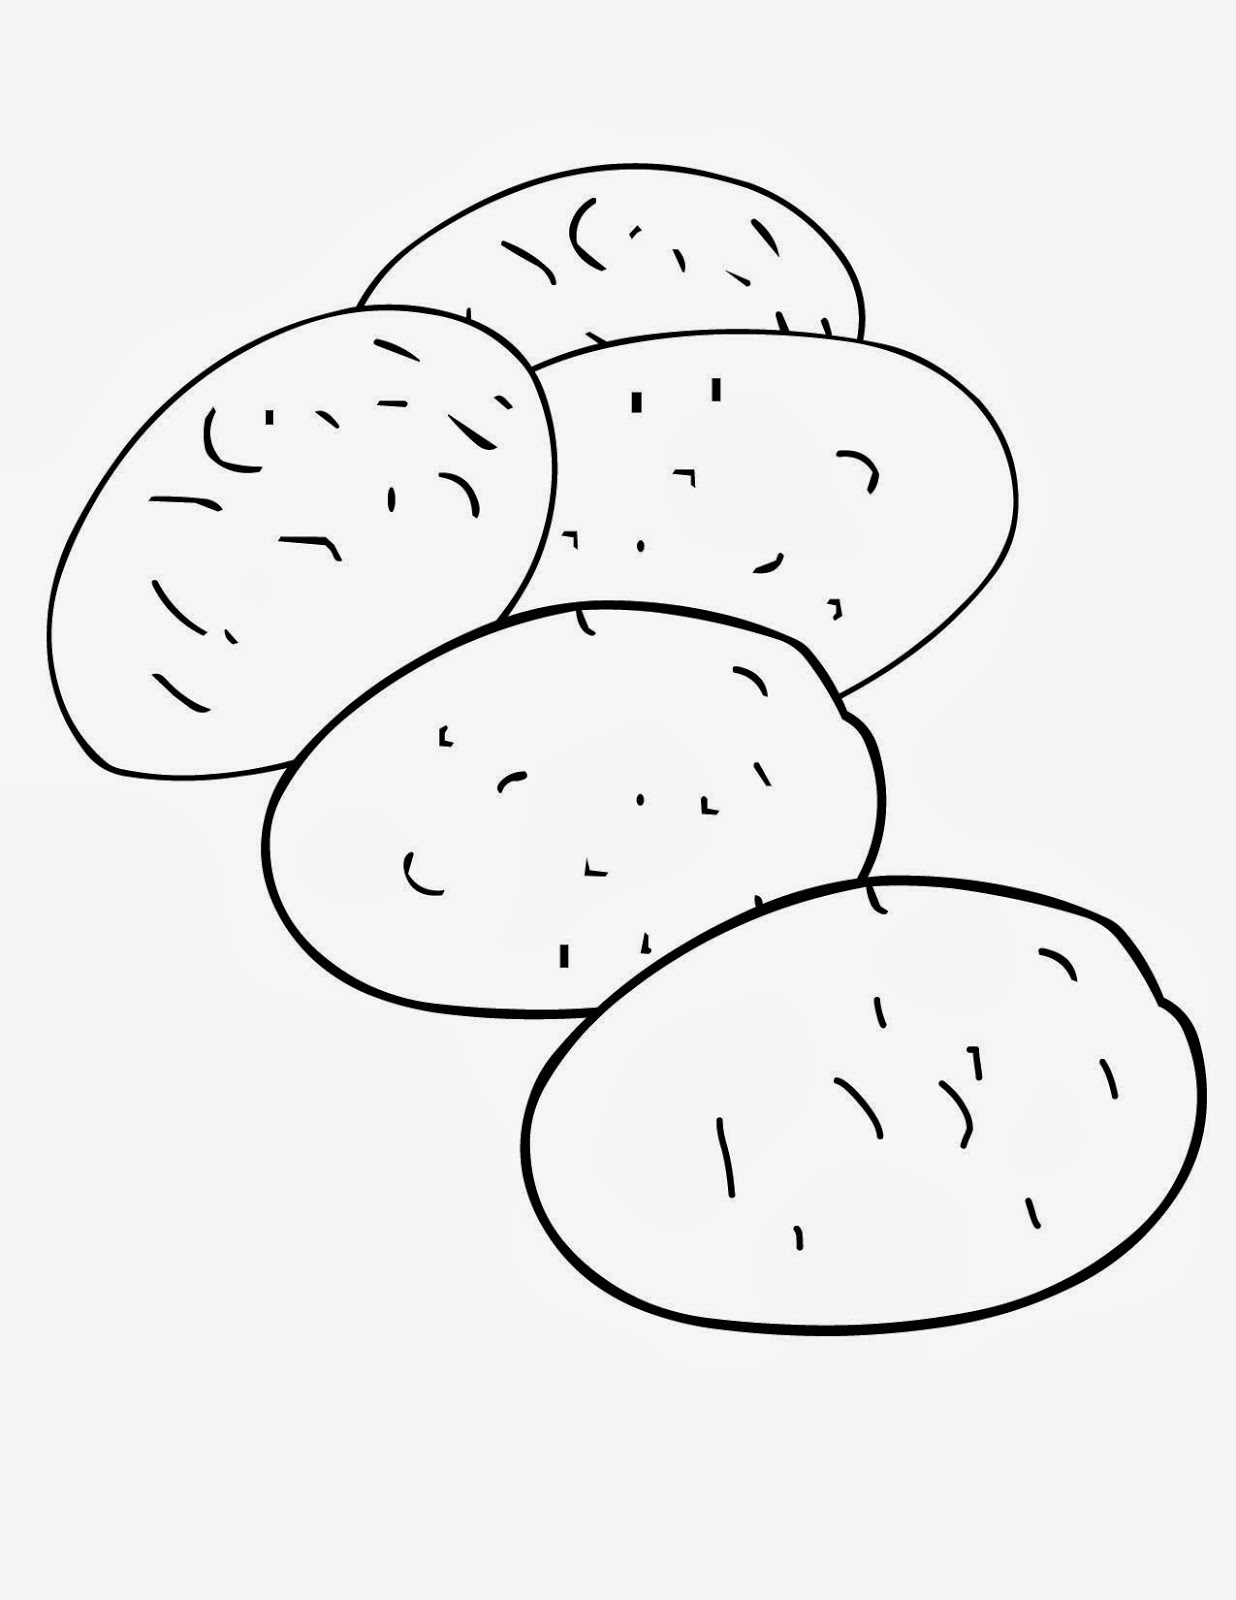 Potato 1 coloring page free printable coloring pages - Ree Coloring Pages Color Poster And Pictures In Vegetables Coloring Pages